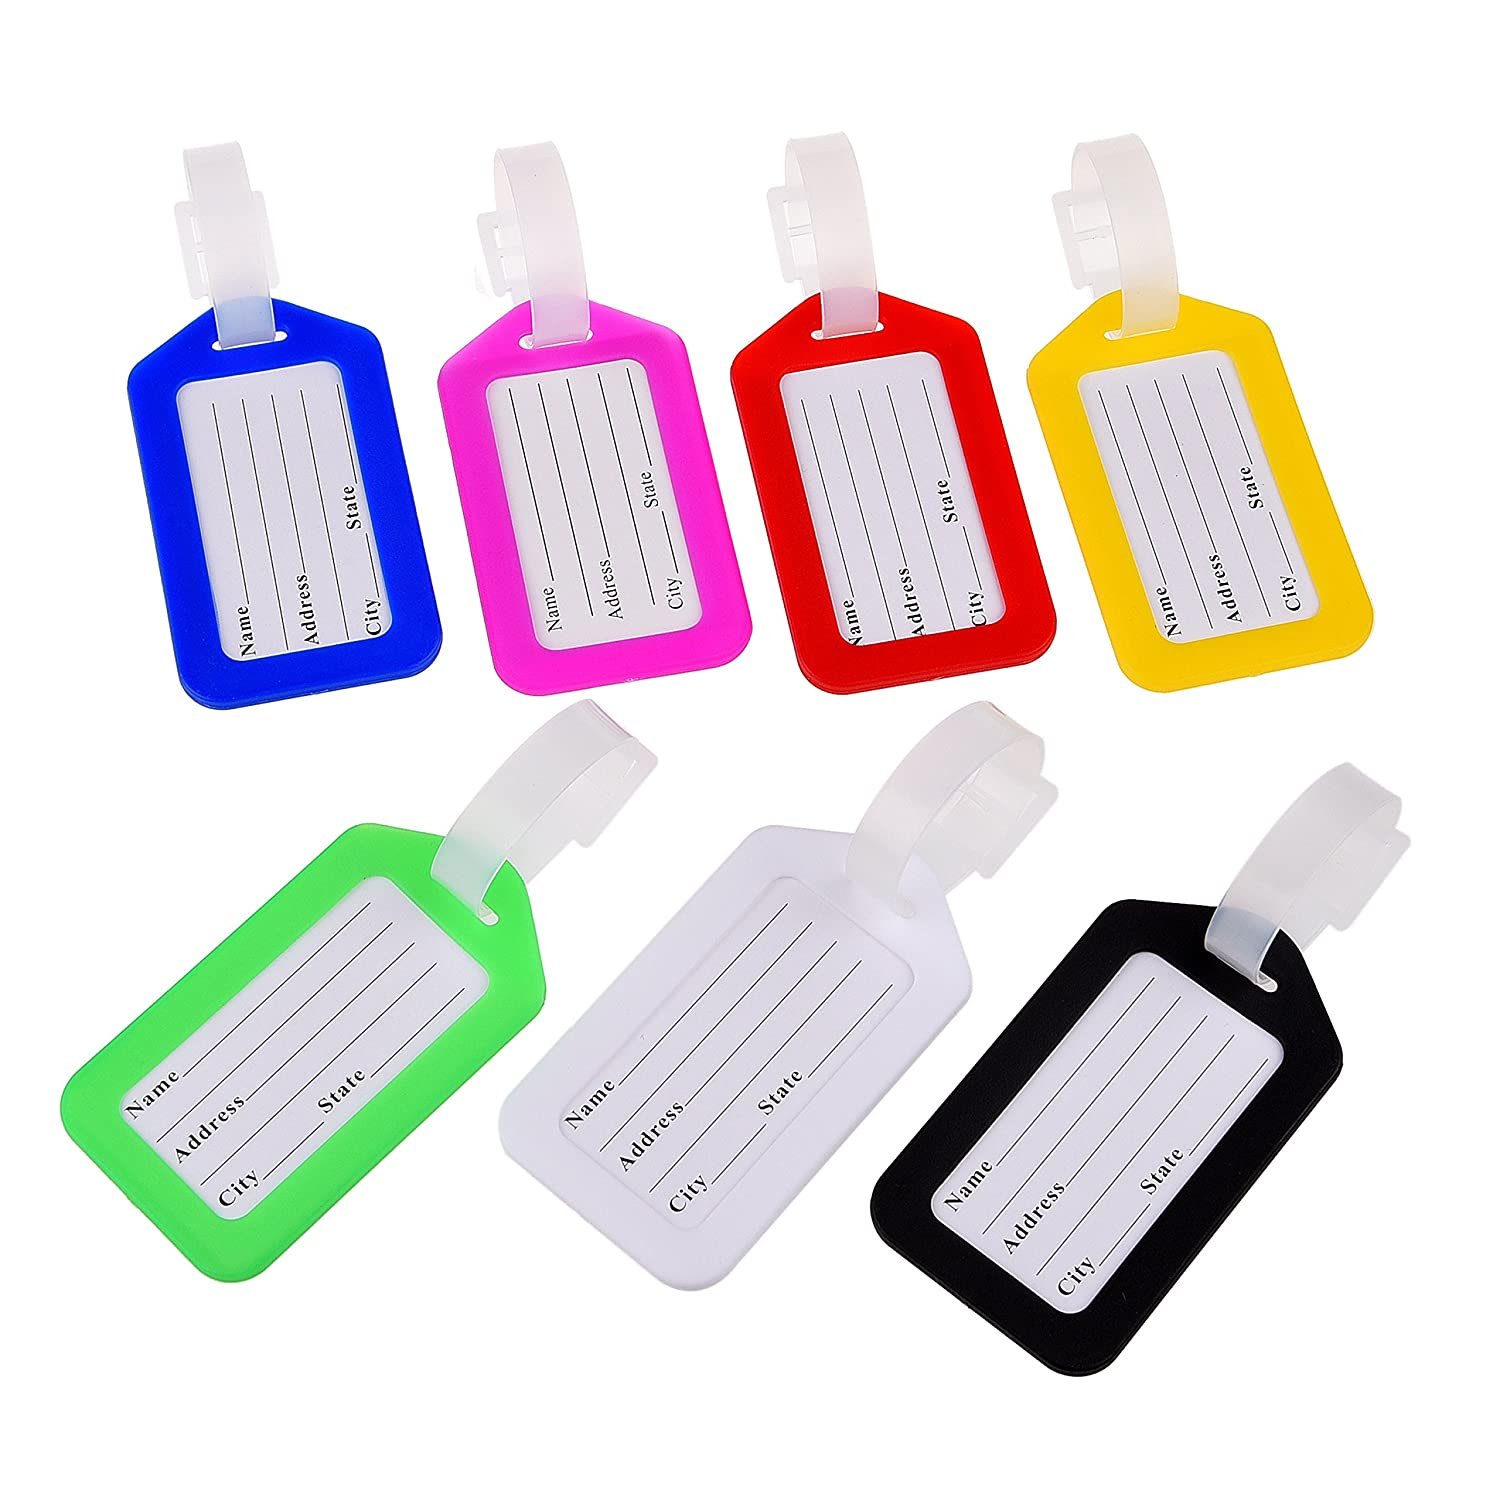 Set of Luggage Tags with Address Cards - 7 Different Colors - Perfect to Quickly Spot Your Luggage - Adjustable Strap - Durable and Strong - Makes Traveling Easier, Safer and Secure